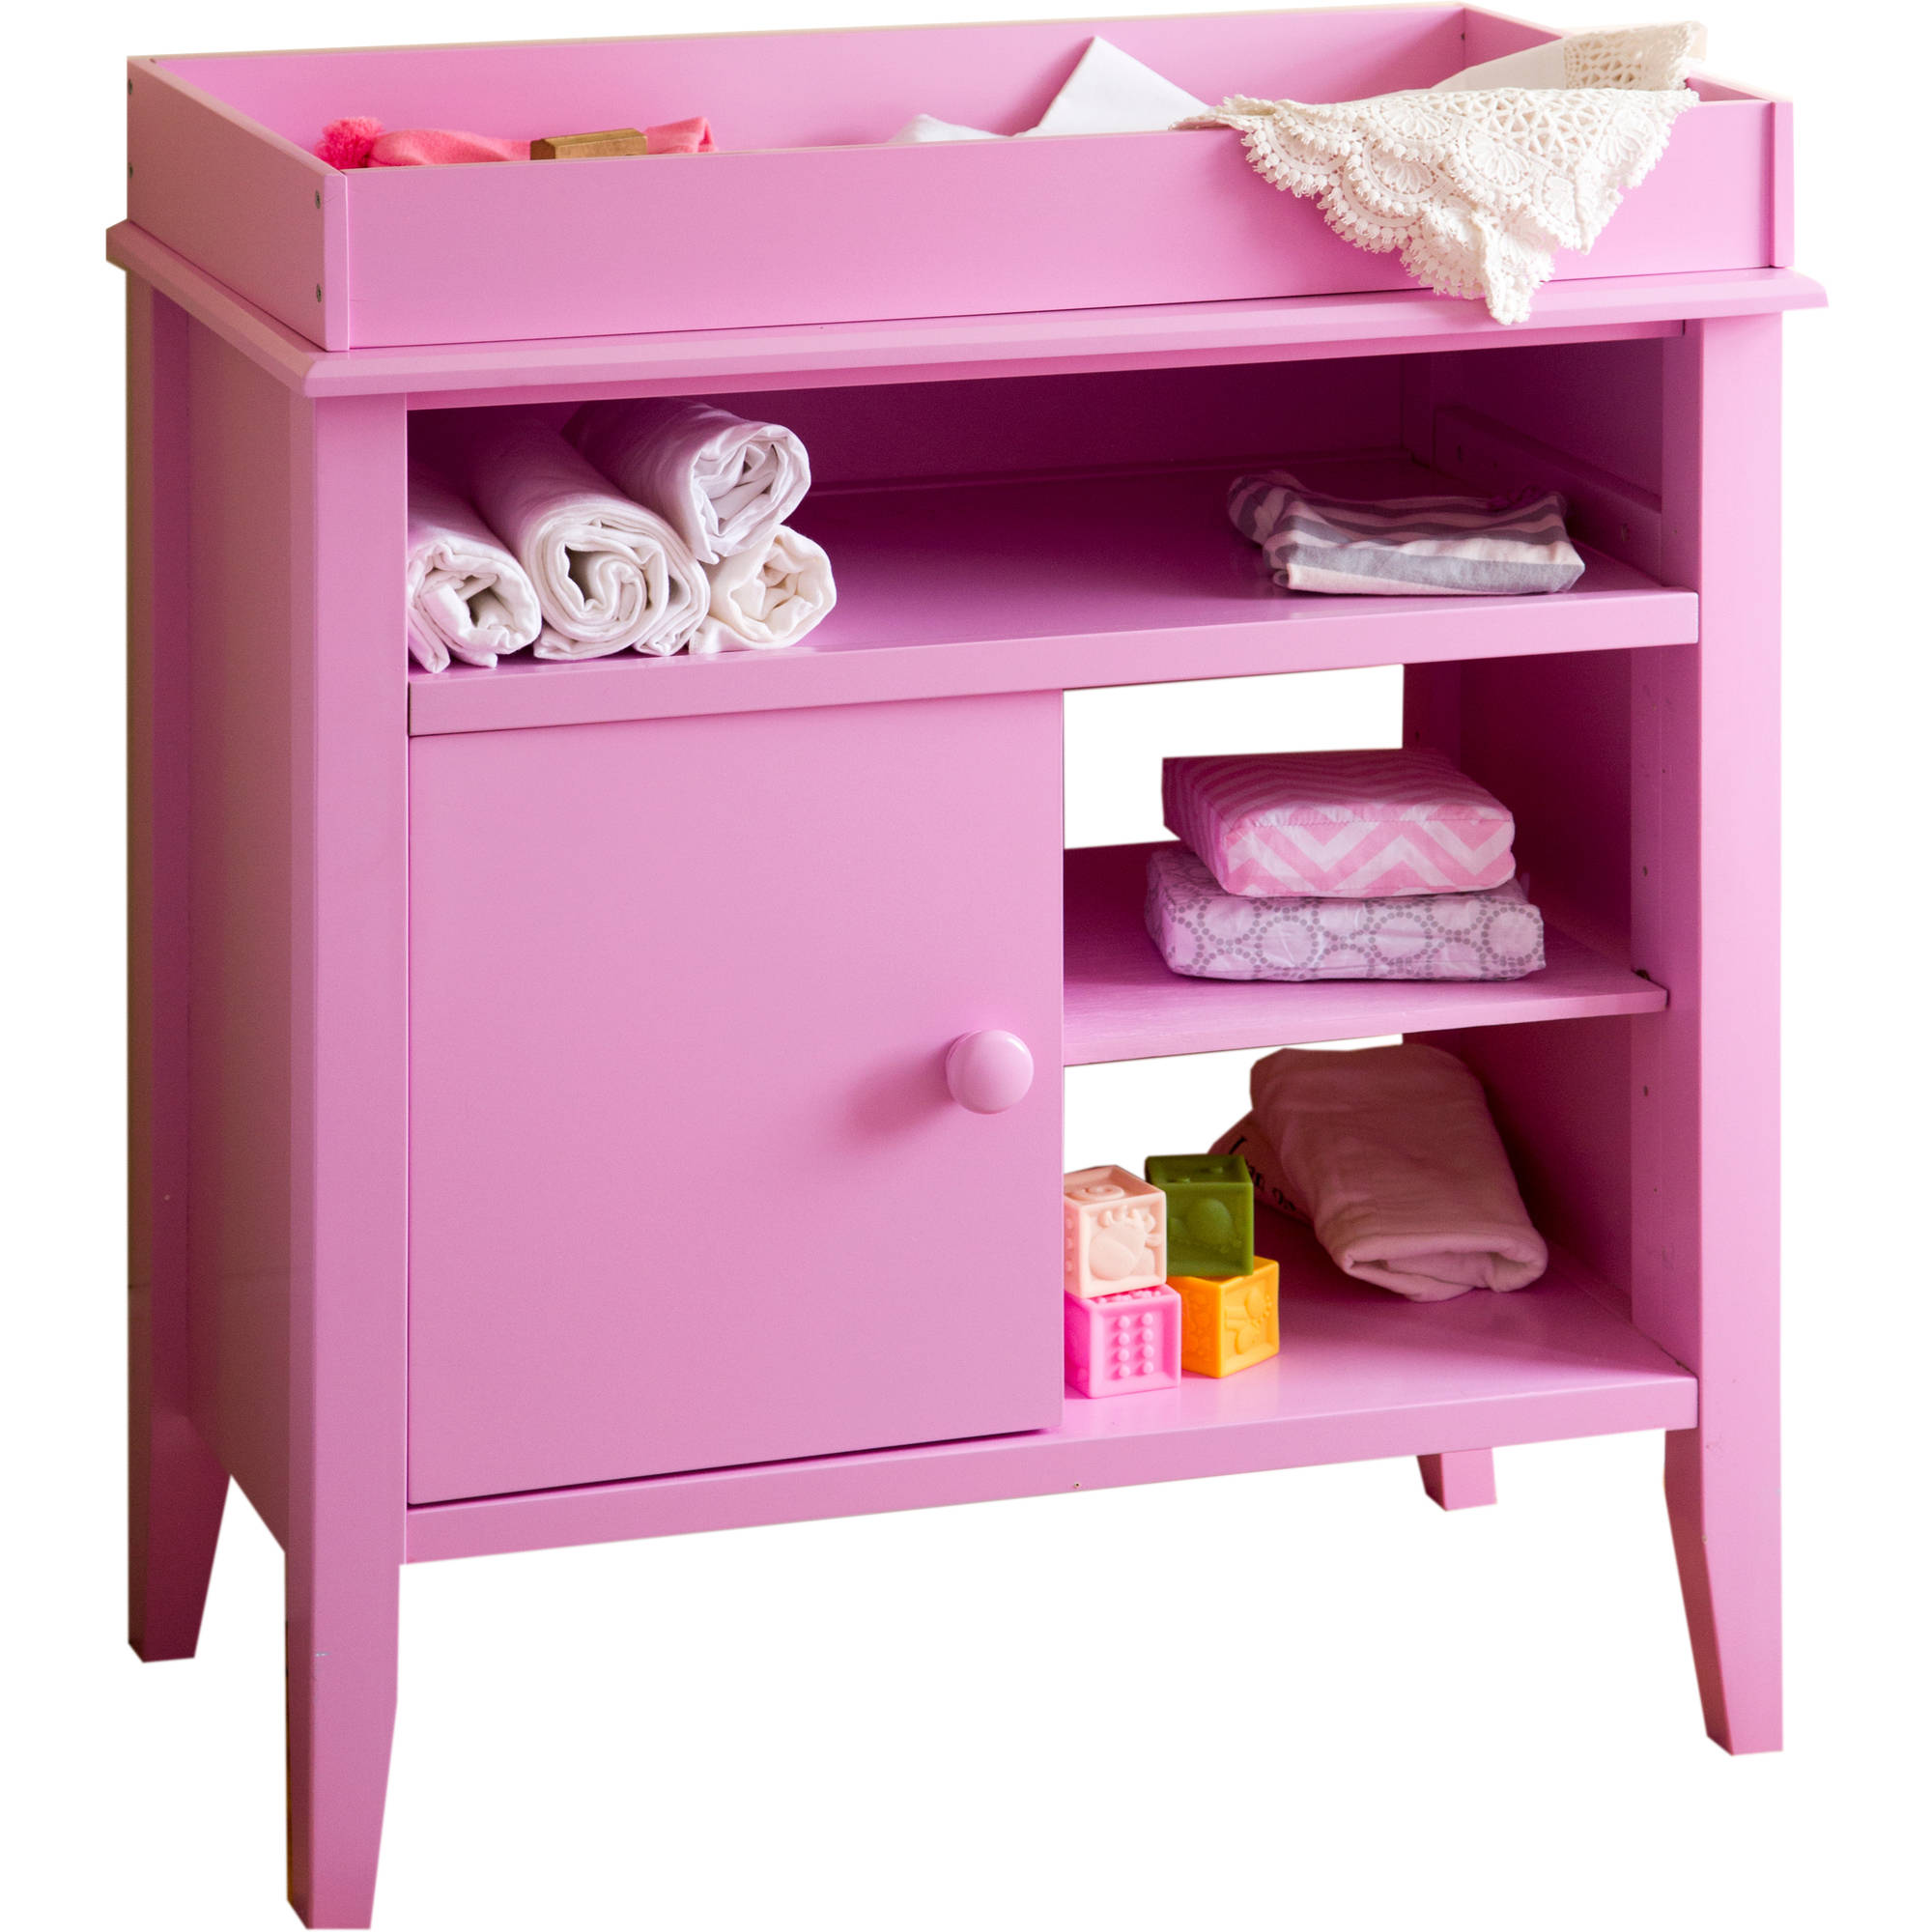 Lolly and Me Universal Changing Table, Bubblegum Pink